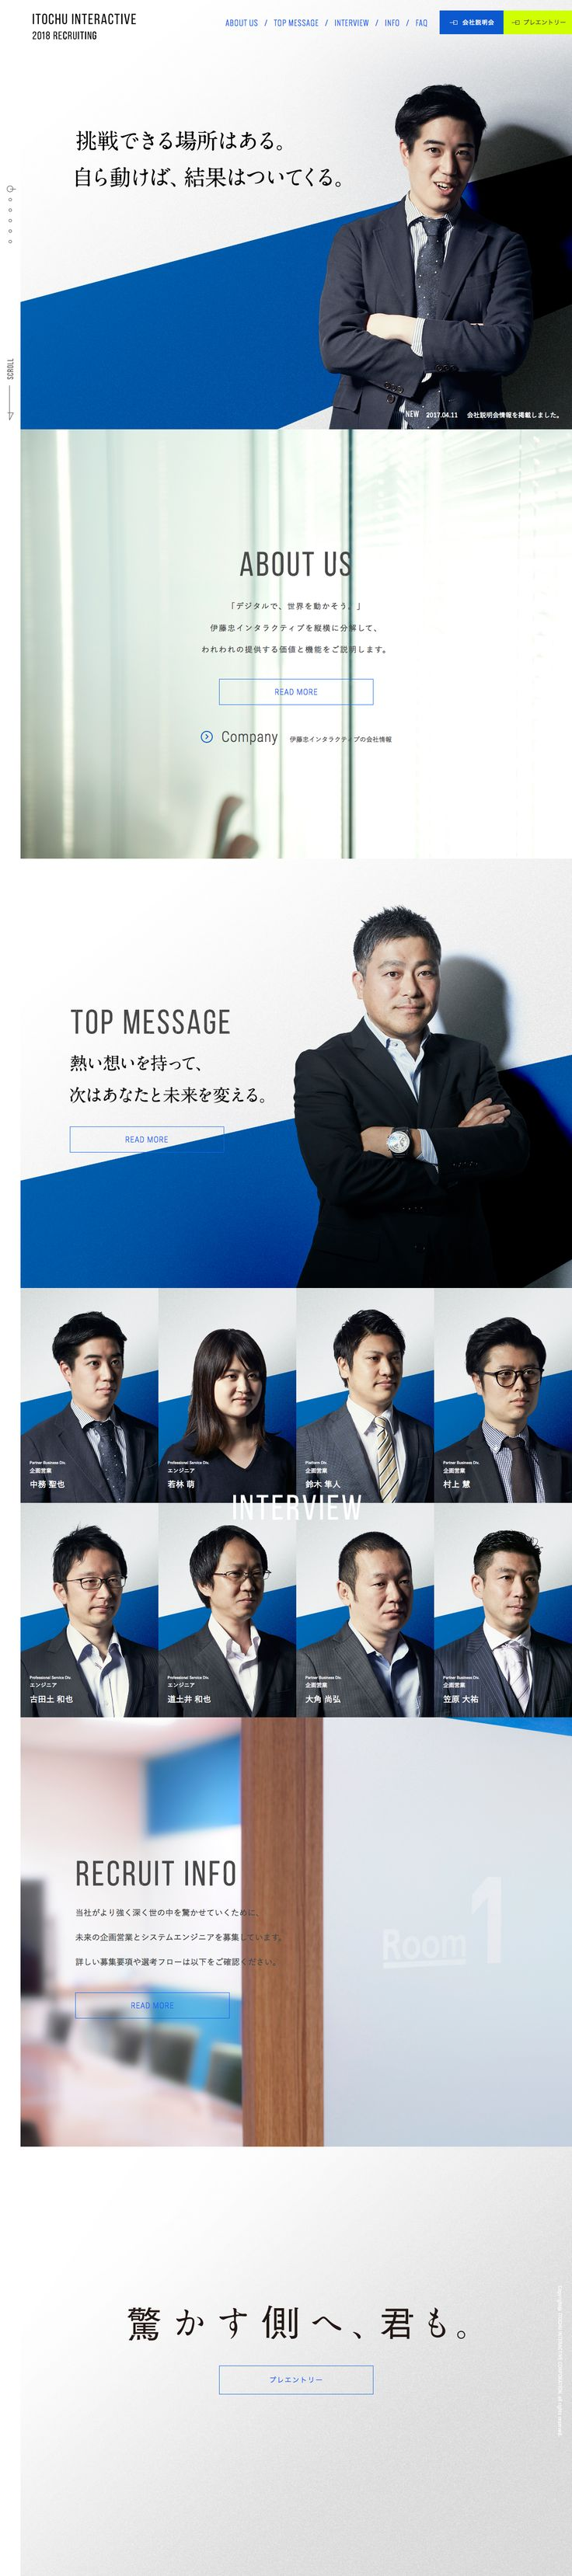 ITOCHU INTERACTIVE 2018 RECRUIT|伊藤忠インタラクティブ株式会社 : 81-web.com【Webデザイン リンク集】